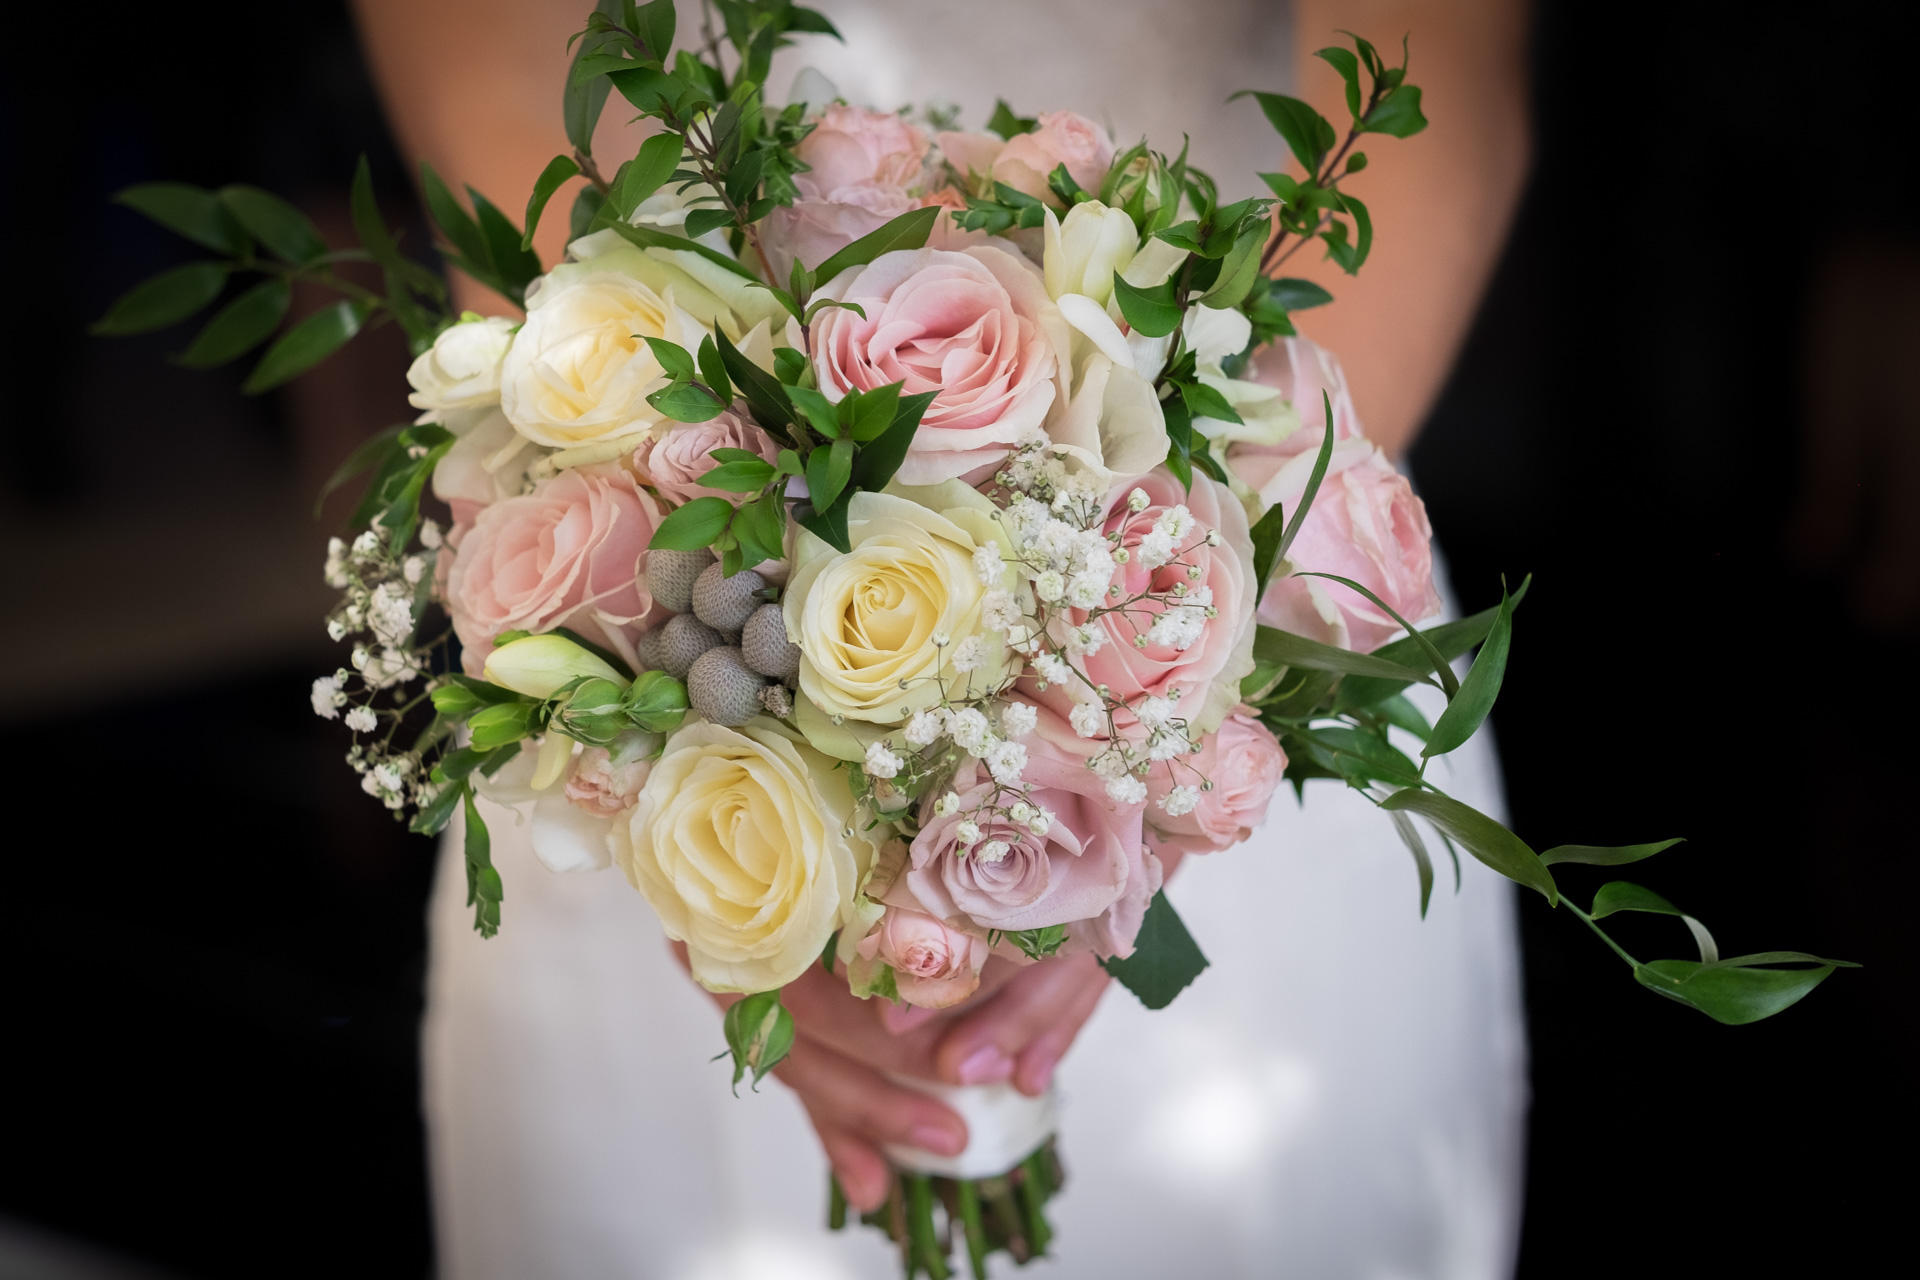 Bridal flower bouquet photograph by Essex wedding photographer Eyeshine Photography